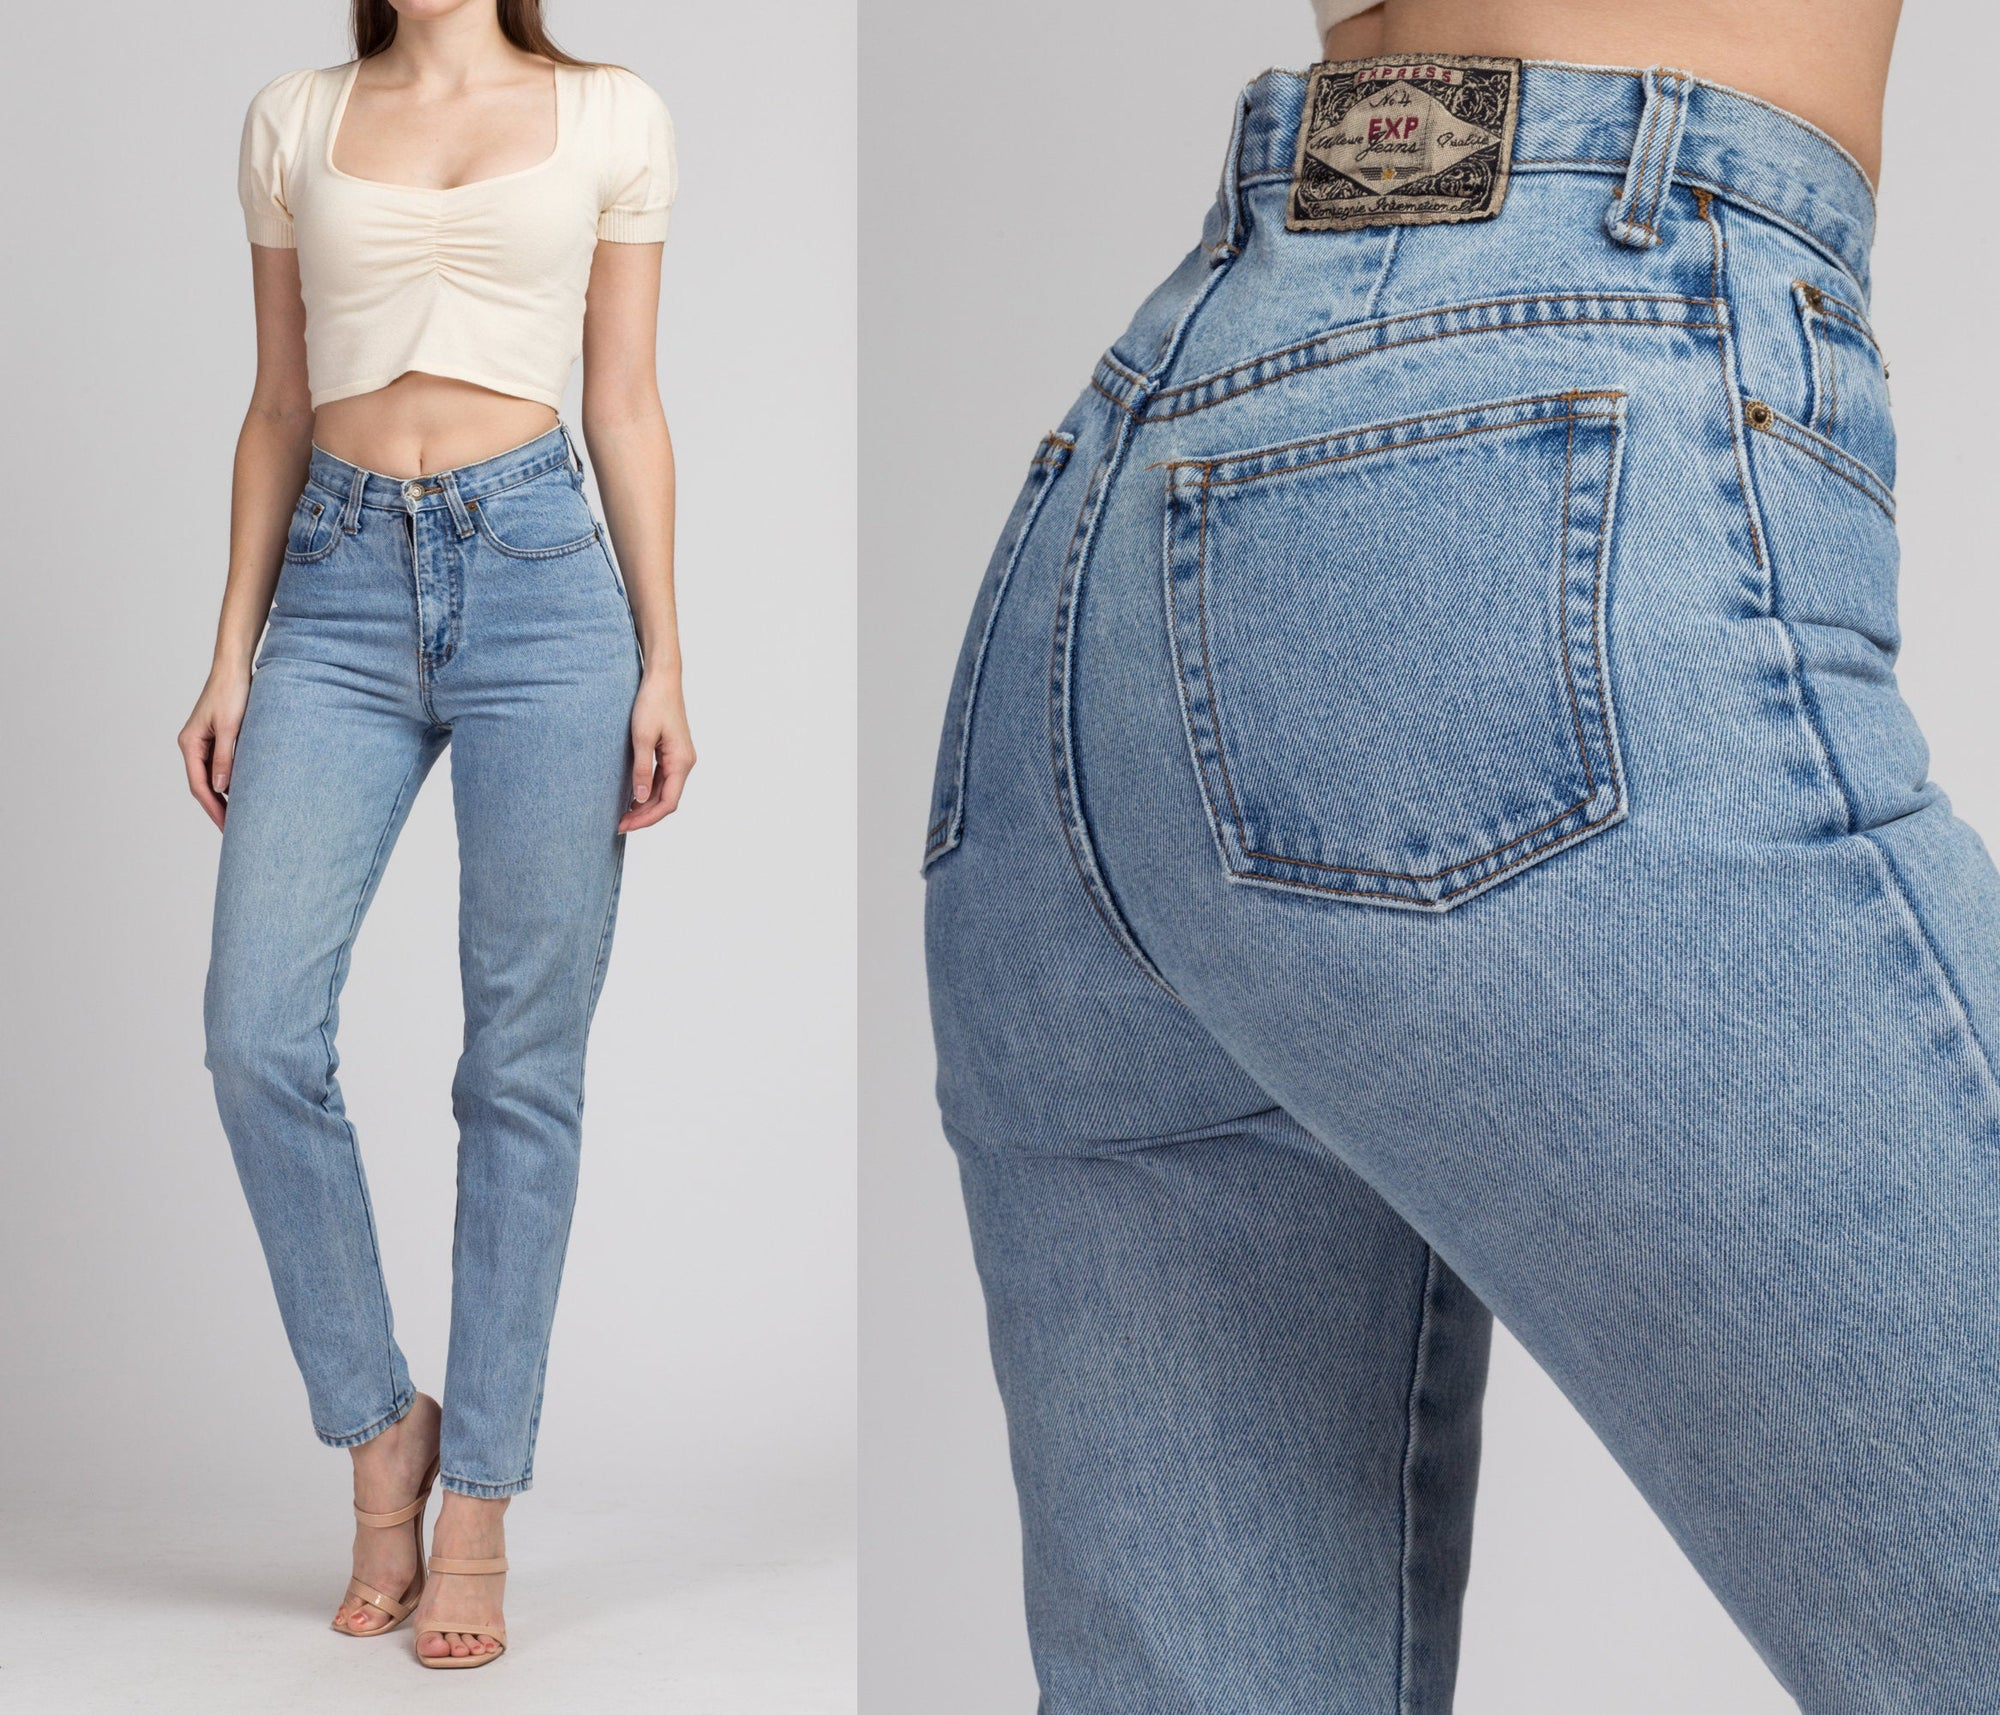 90s High Waist Express Jeans - XS to Small, 26""